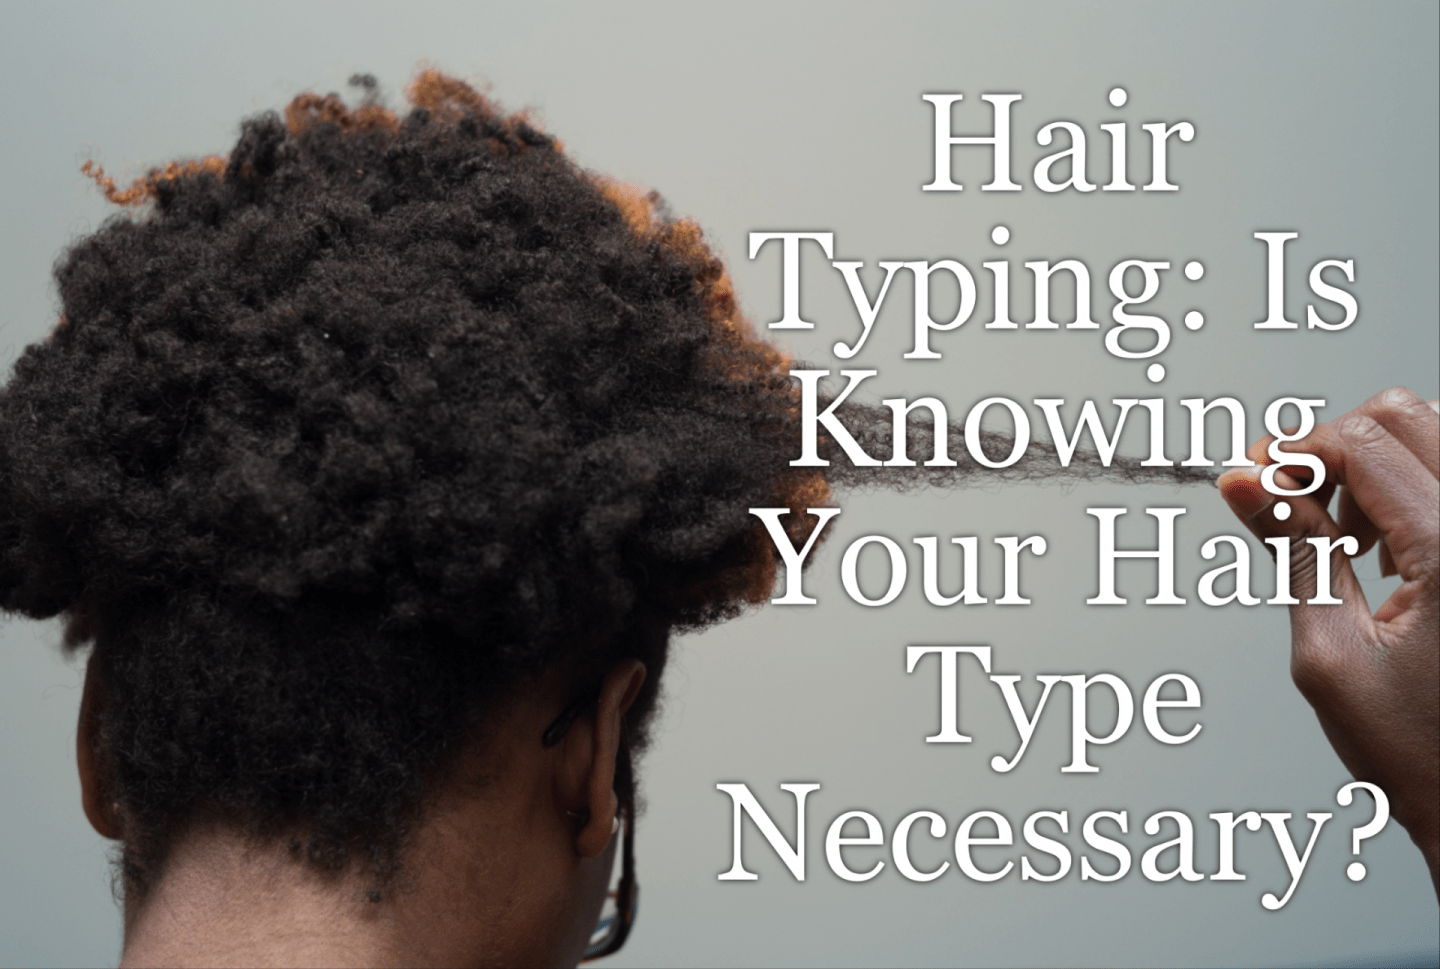 Hair Type: Some say yes, while others say no. We discuss and share why there is a division on hair typing and how this may or may not assist.